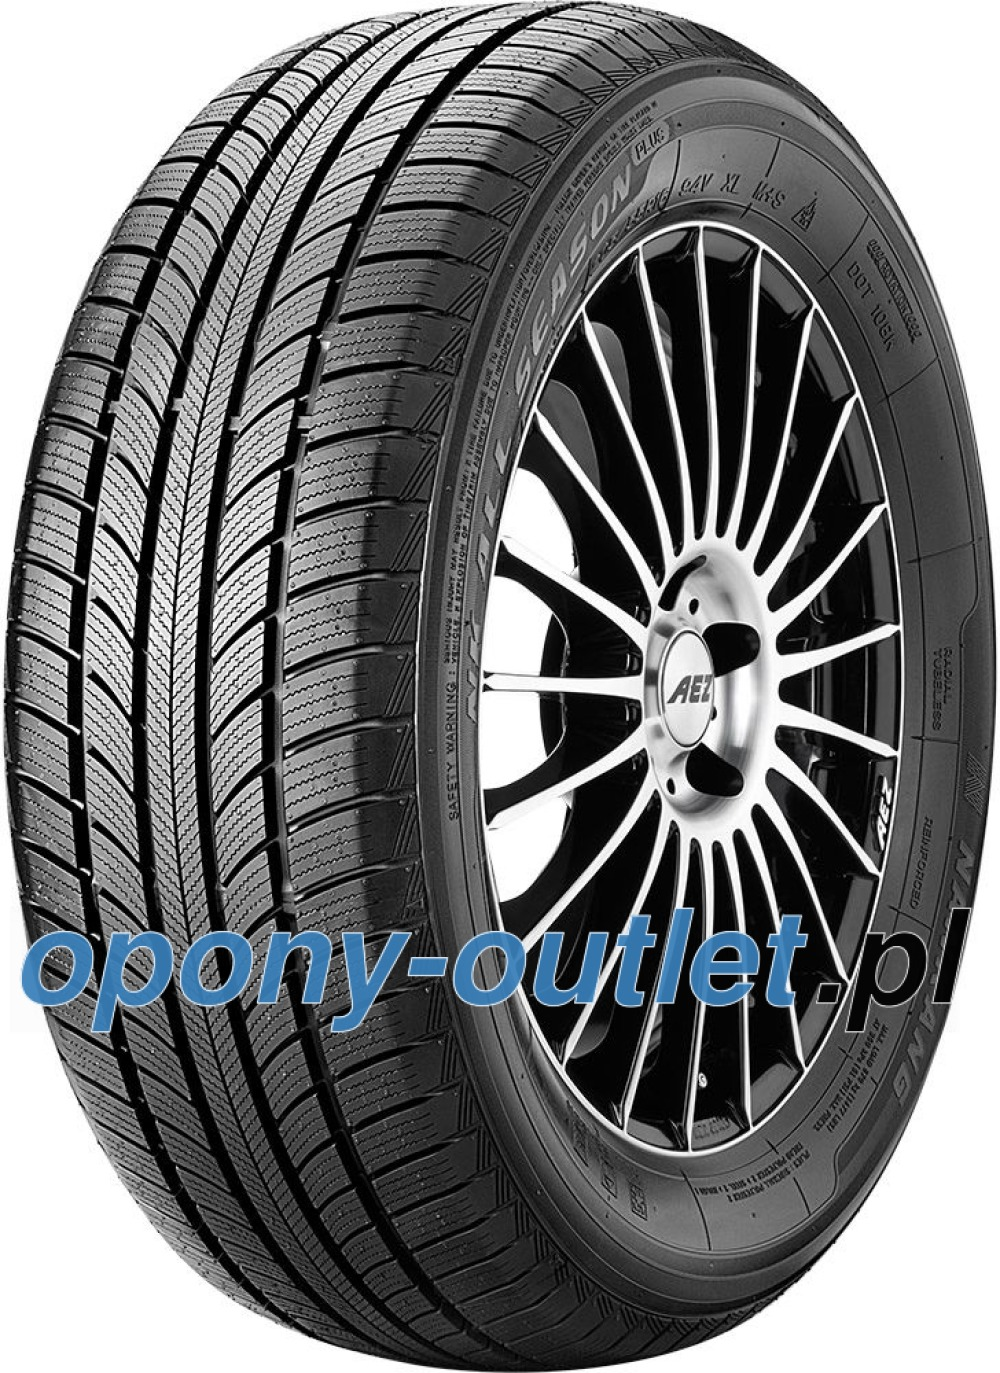 Nankang All Season Plus N-607+ ( 195/55 R16 91H XL )